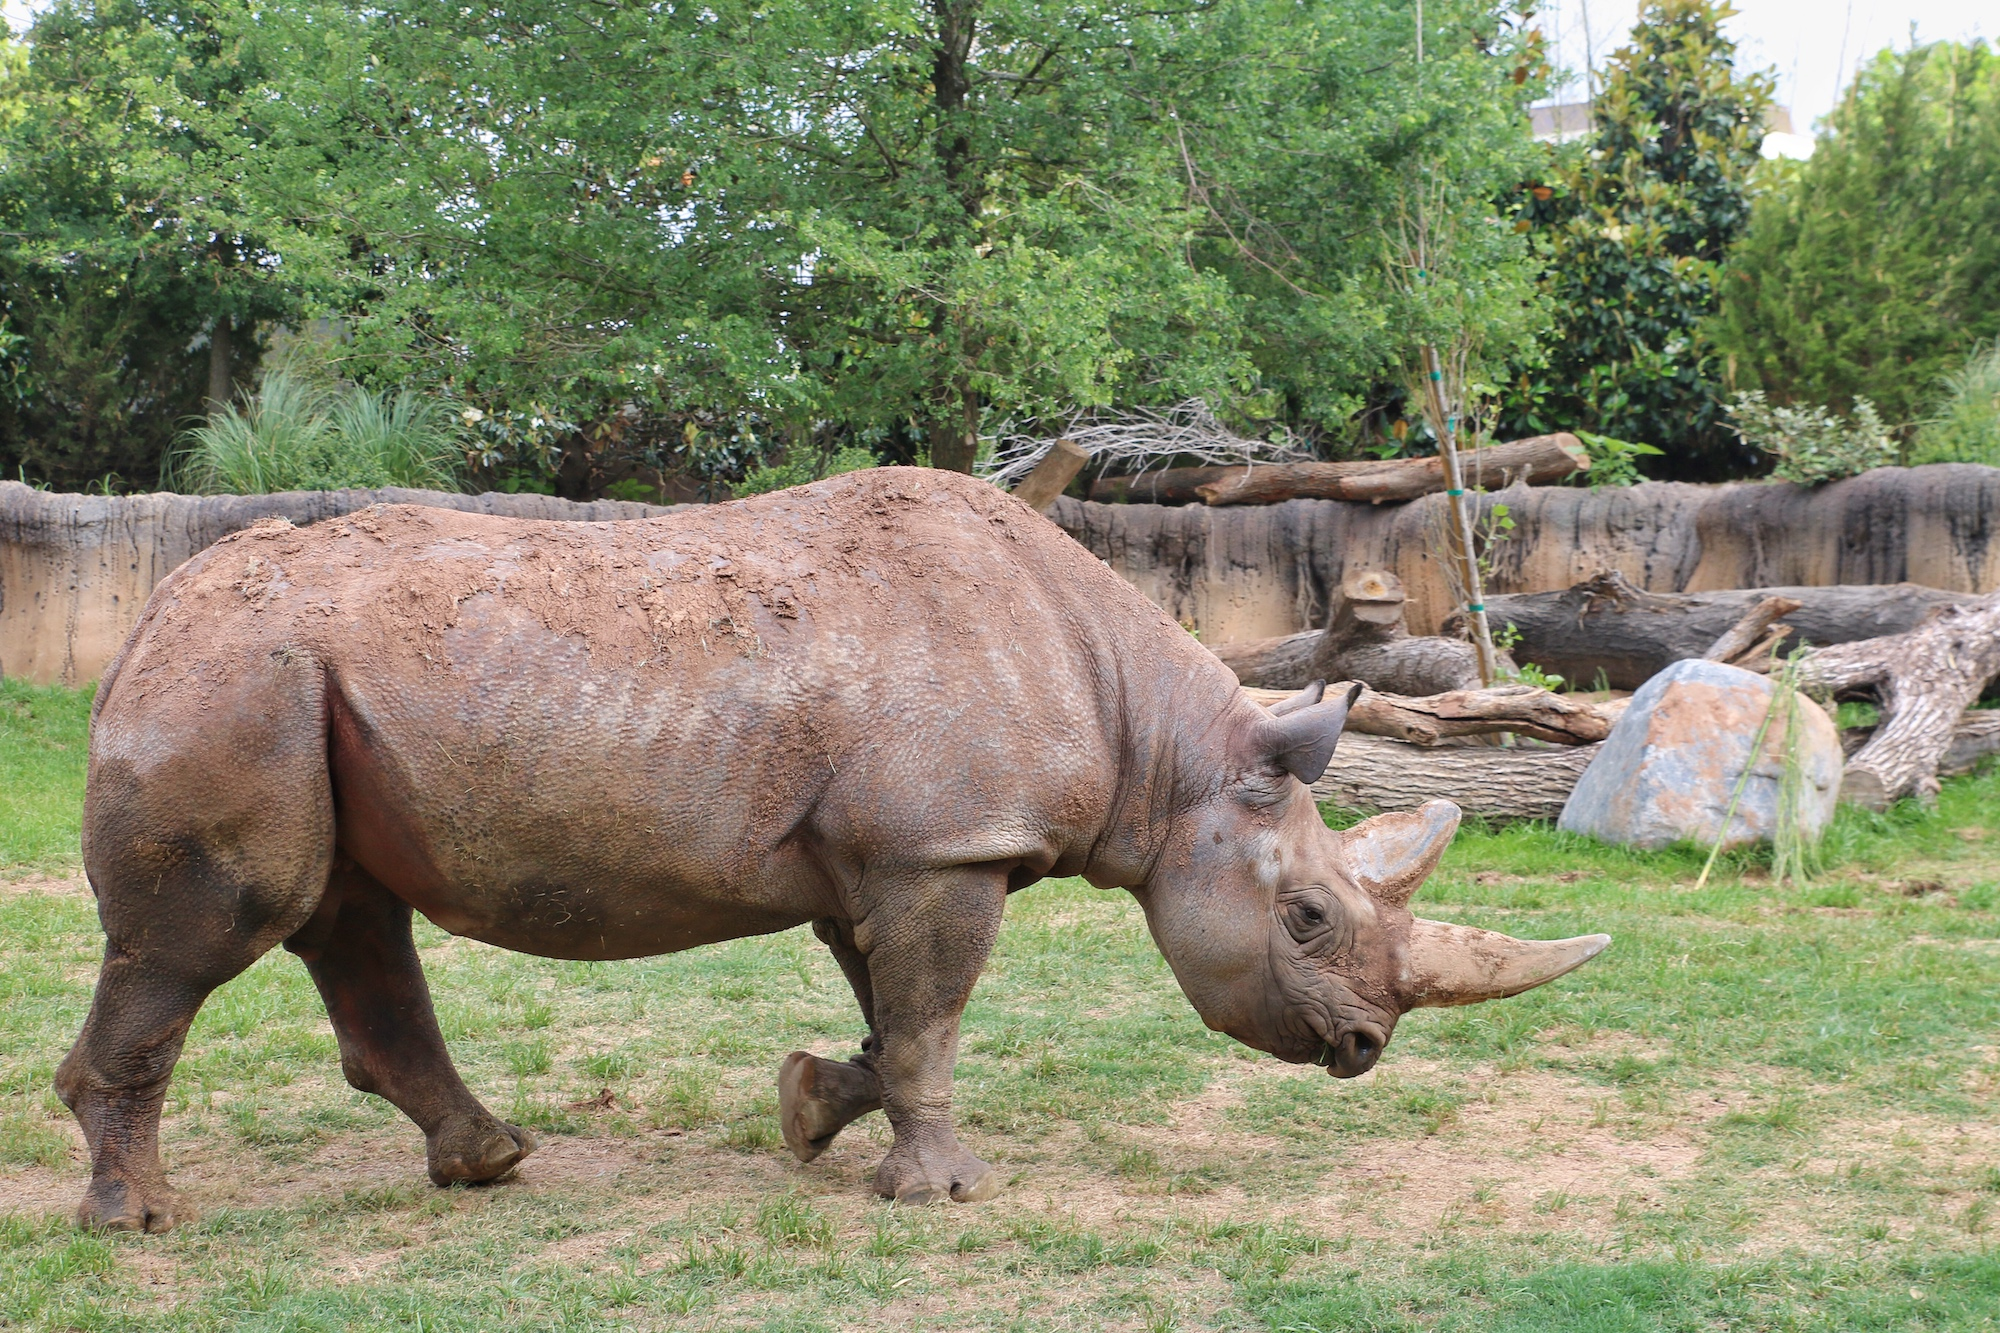 rhino viewing area at Fort Worth zoo